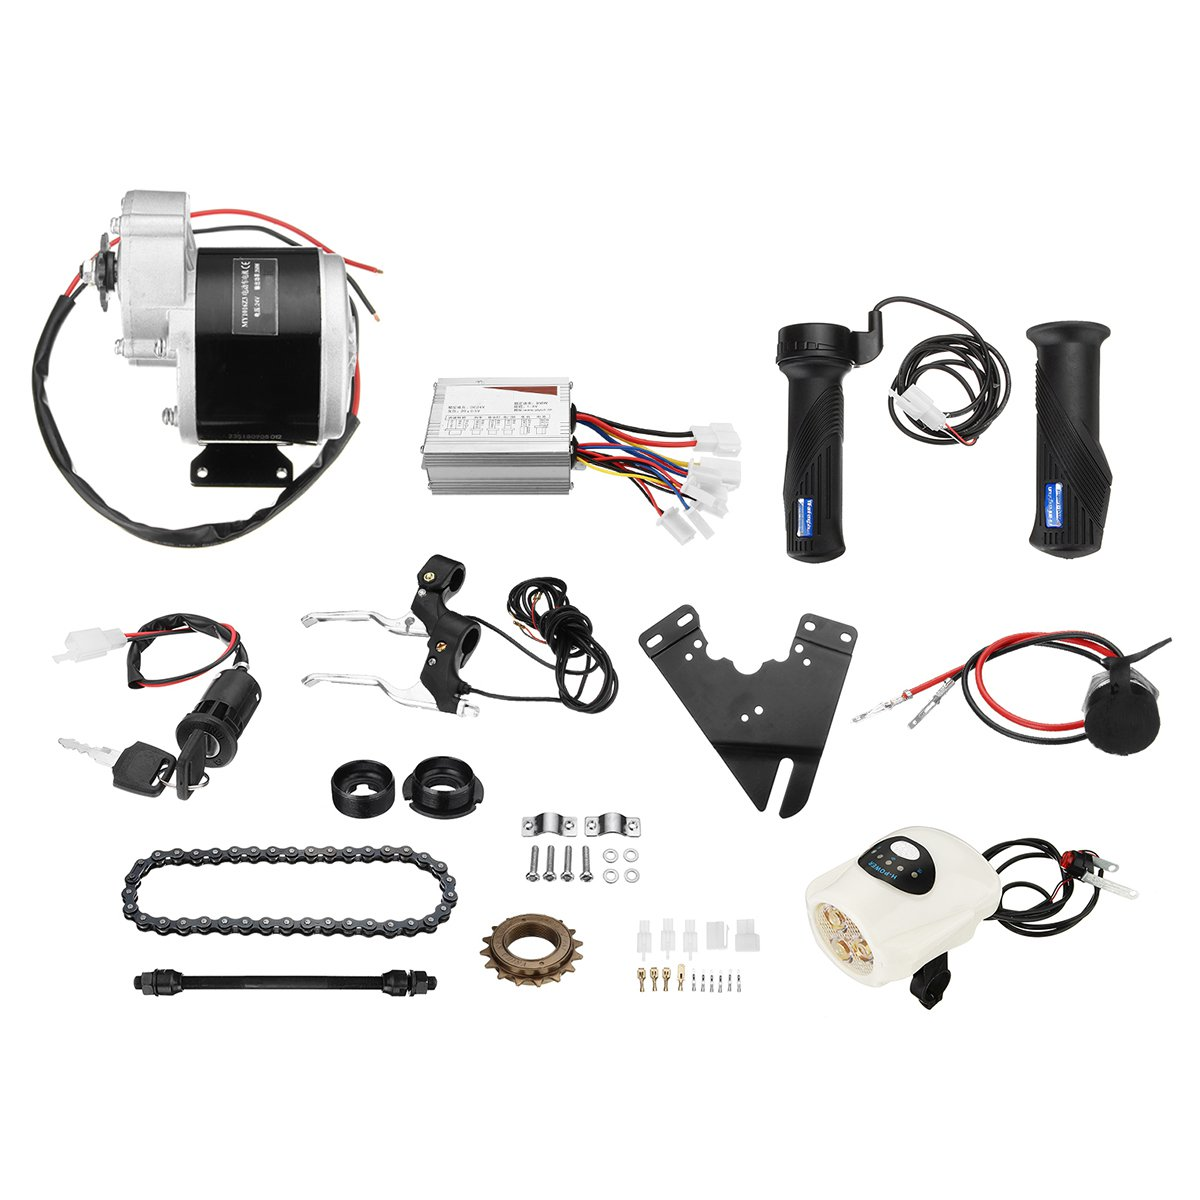 24V 350W Electric Bicycle Conversion Kit Brushed DC Motor For 22-28 Inch DIY Electric Bike Conversion Kit With Controller цена